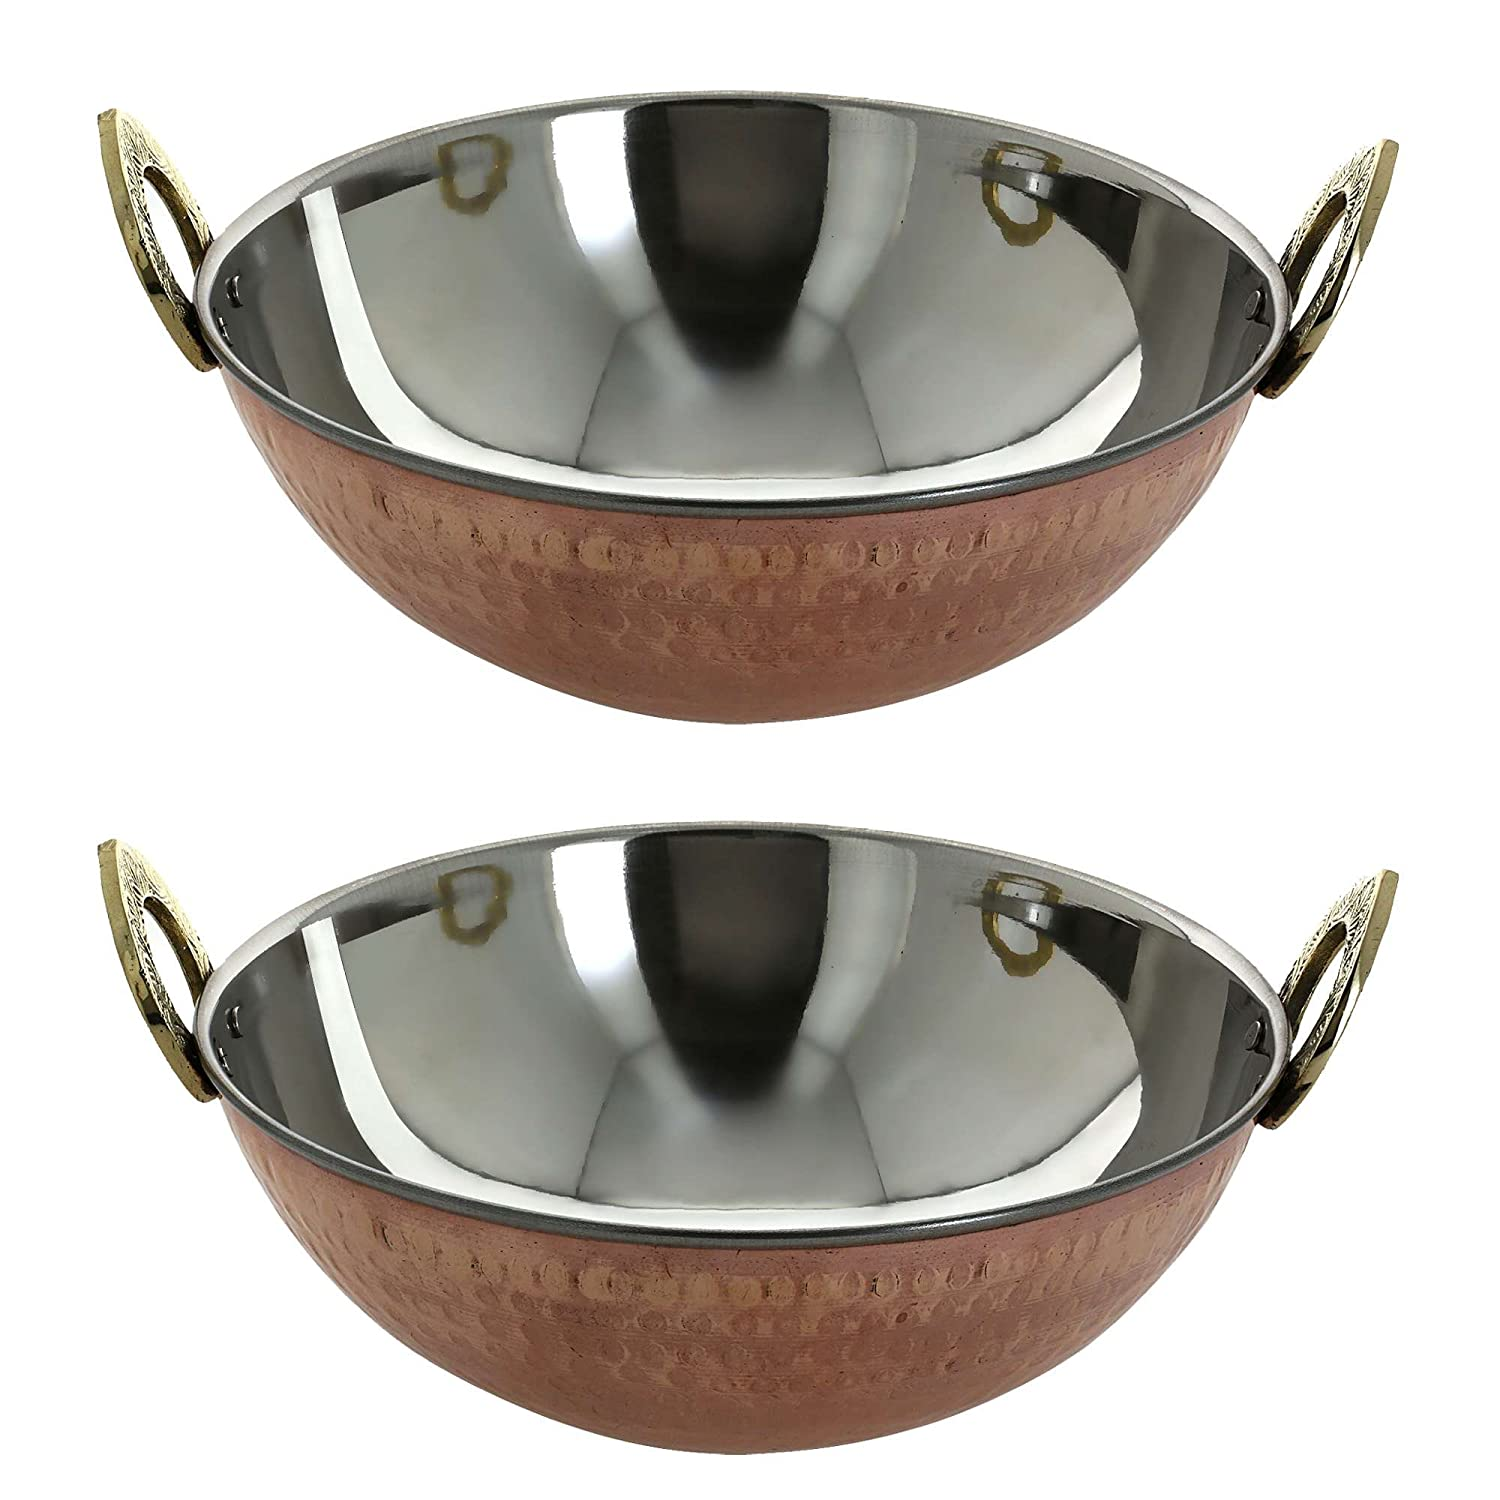 Serving bowl karahi indian recipe serveware set of 2 ShalinCraft MN-karahi_8.25inch